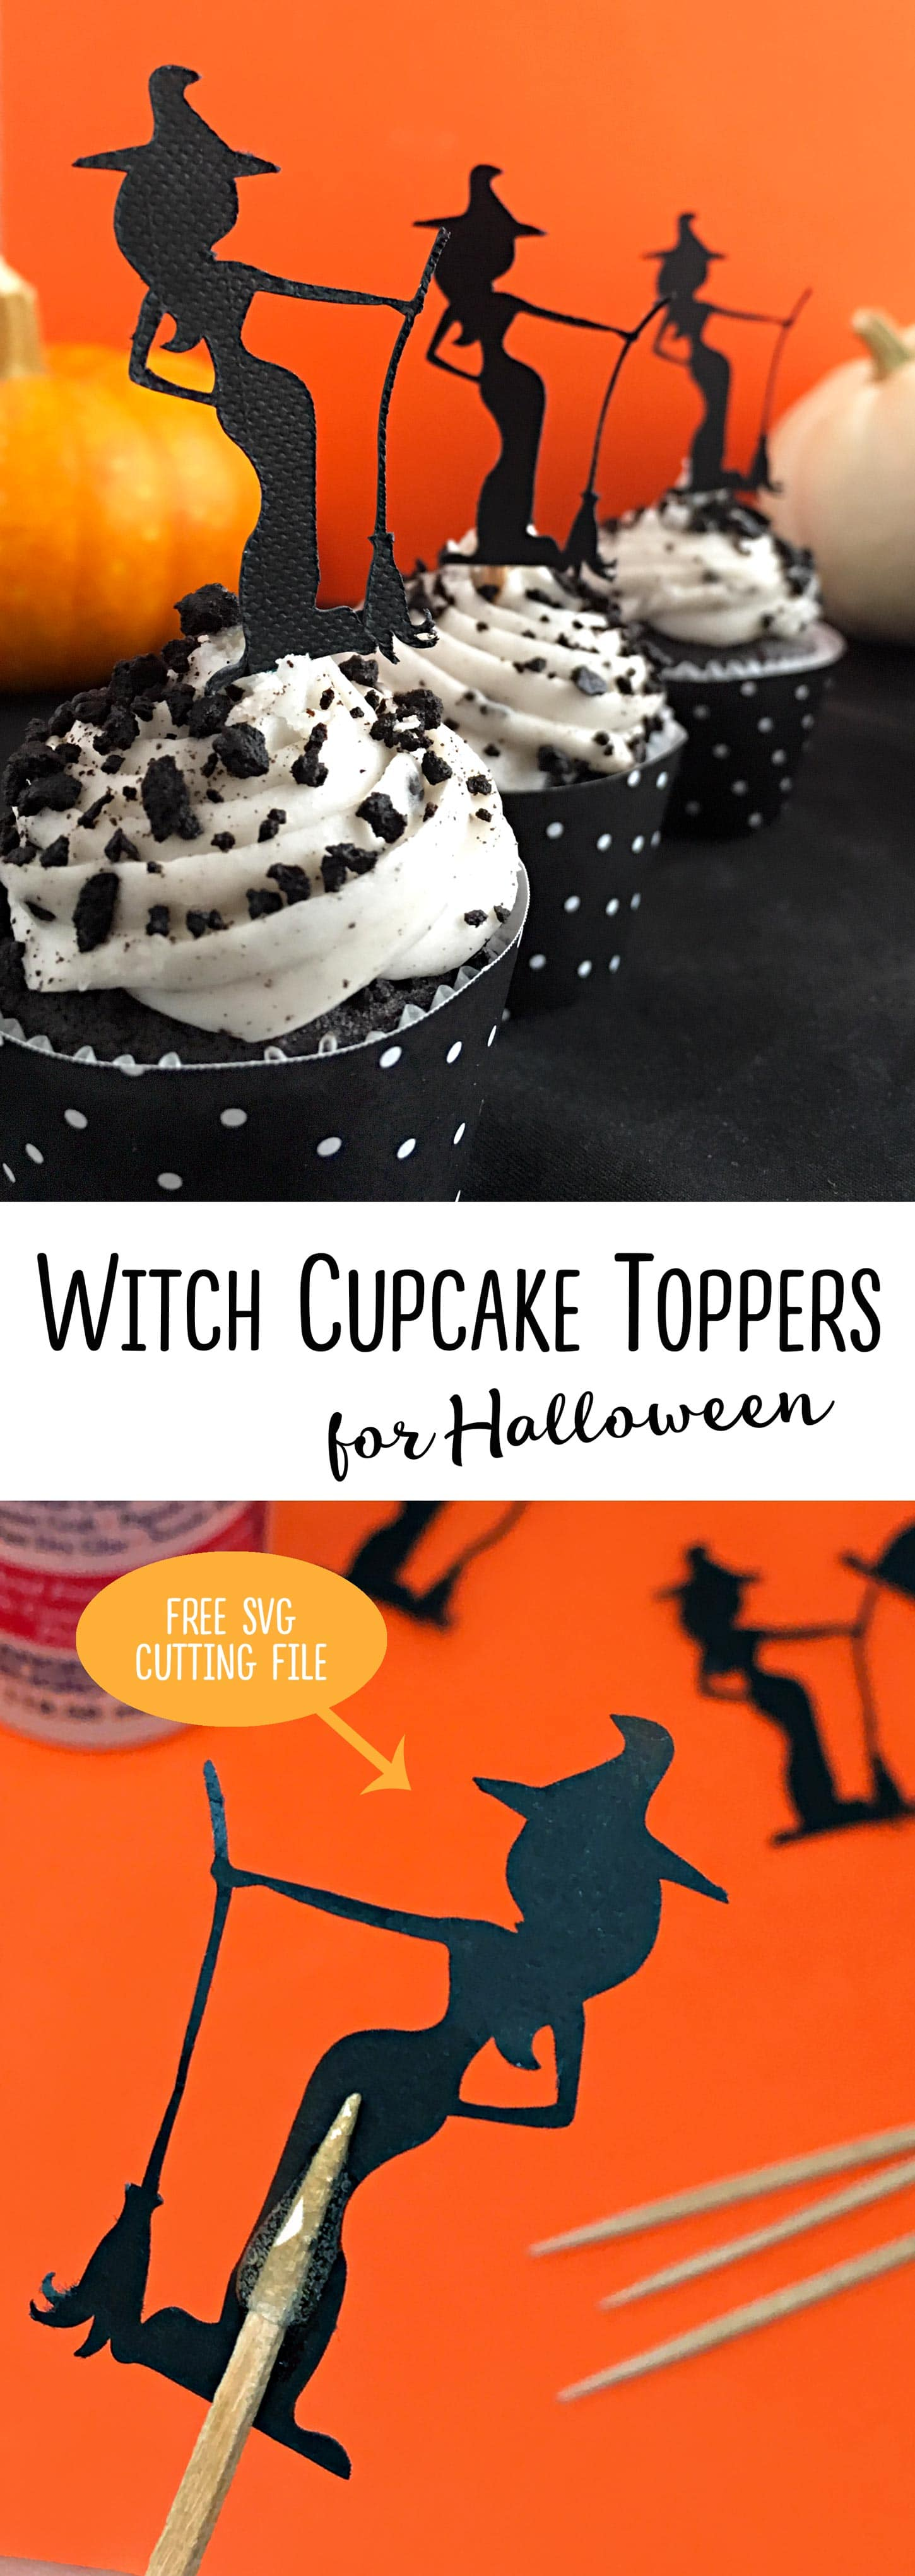 These are adorable!   Make Halloween Witch Cupcake Toppers for girls' night in. Free witch svg cut file from carlaschauer.com